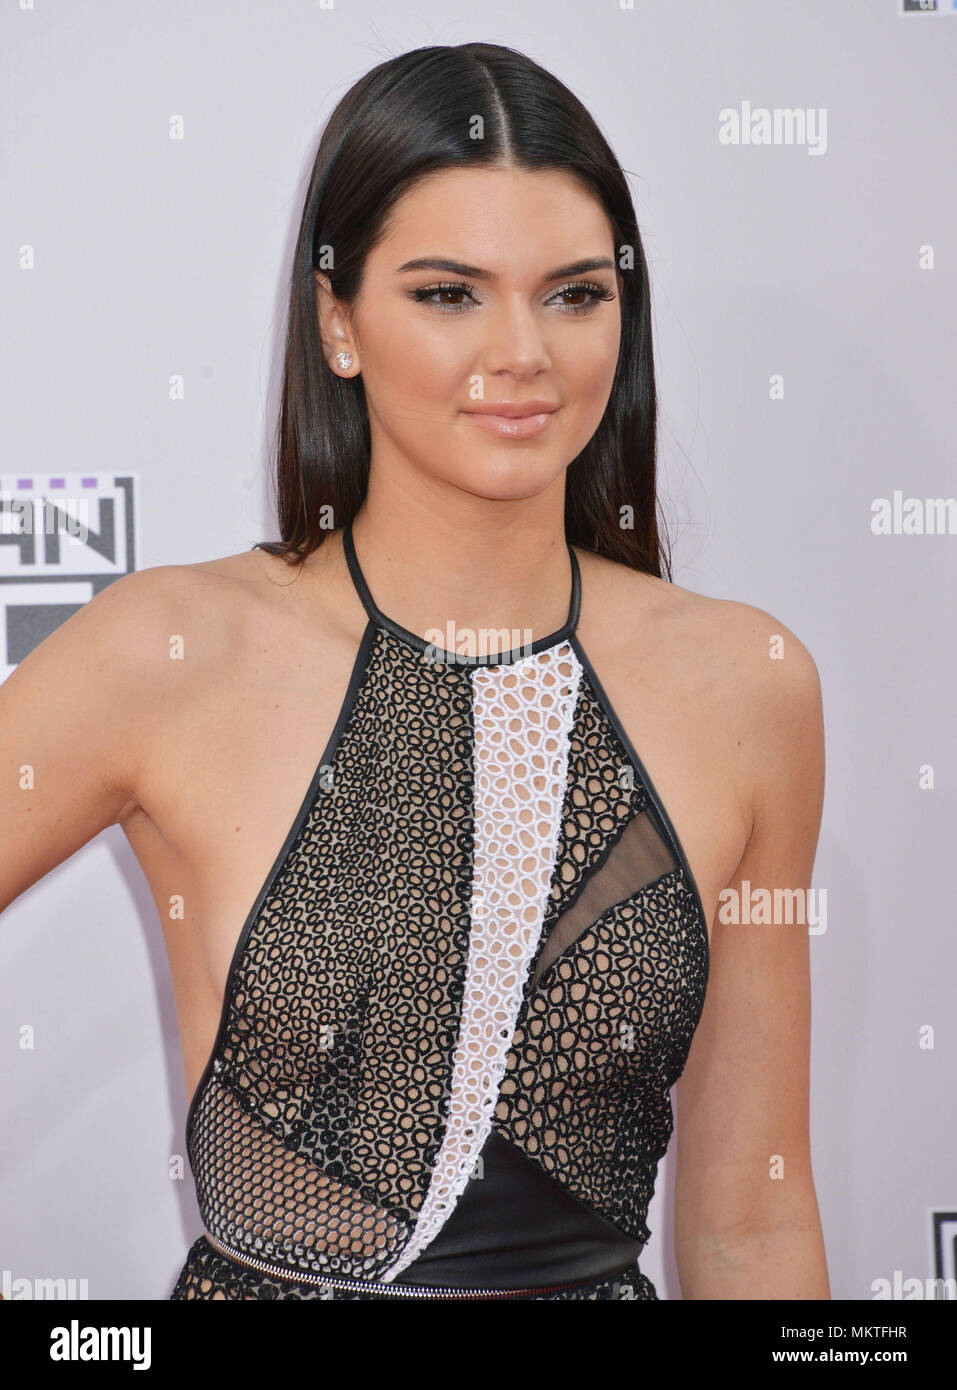 In Los Angeles Kendall Jenner Headshot Stockfotos & In Los Angeles